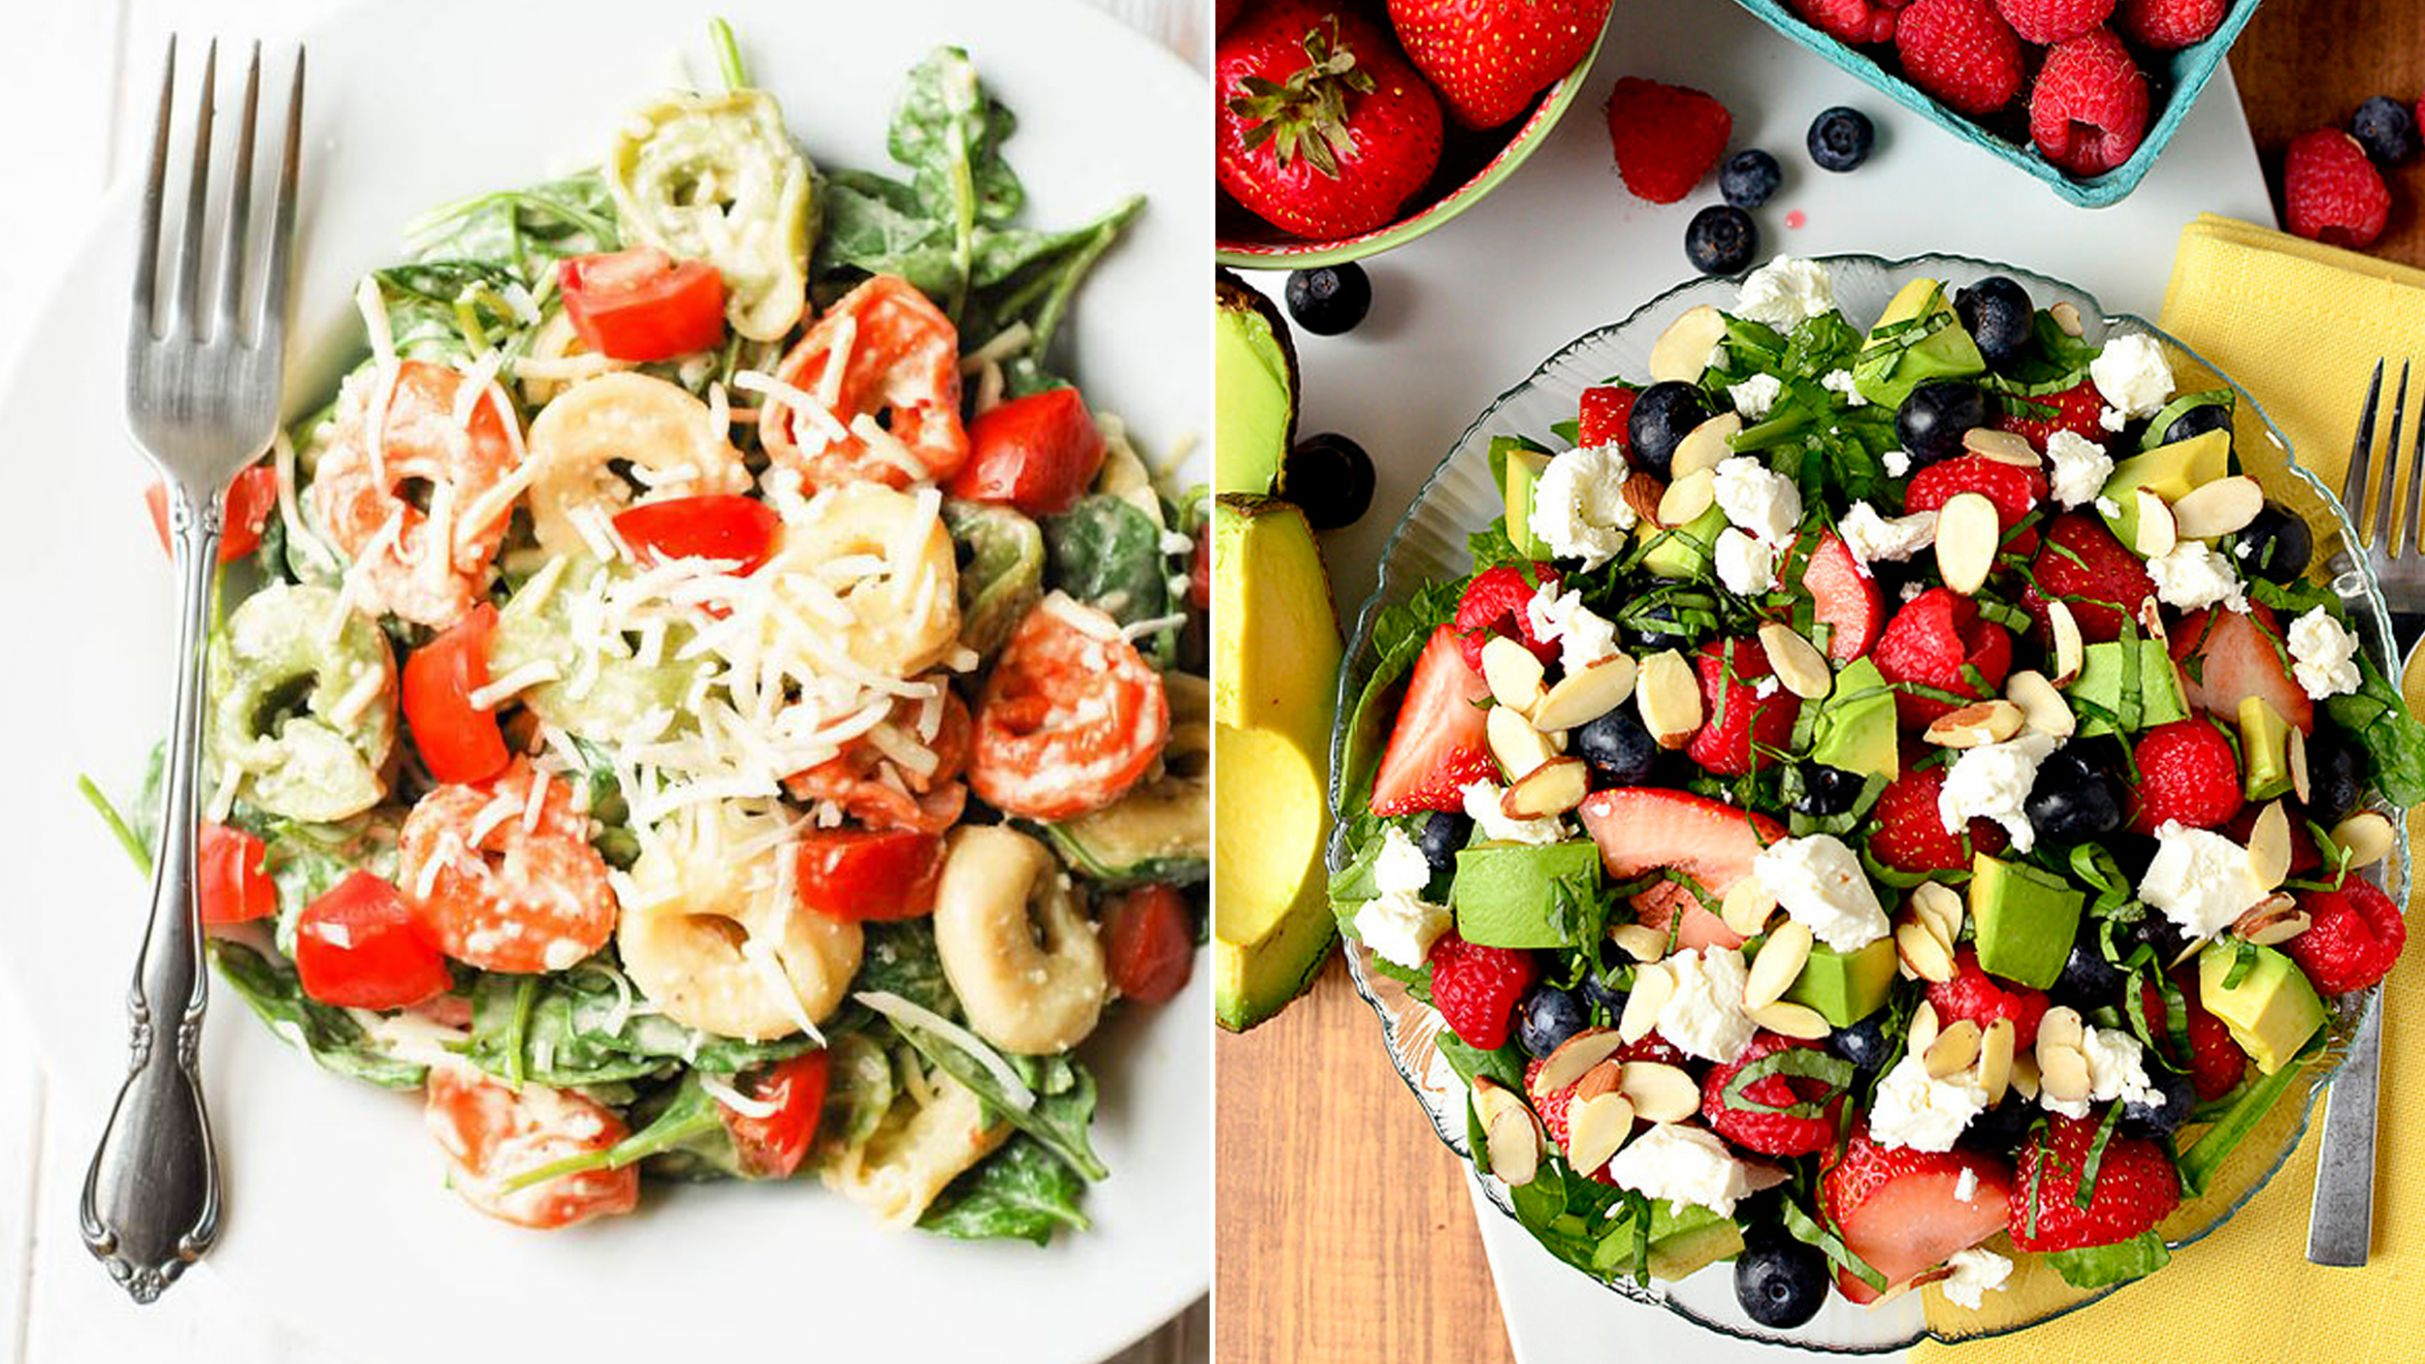 8 Pinterest-approved healthy summer salad recipes - Salad Recipes Pinterest